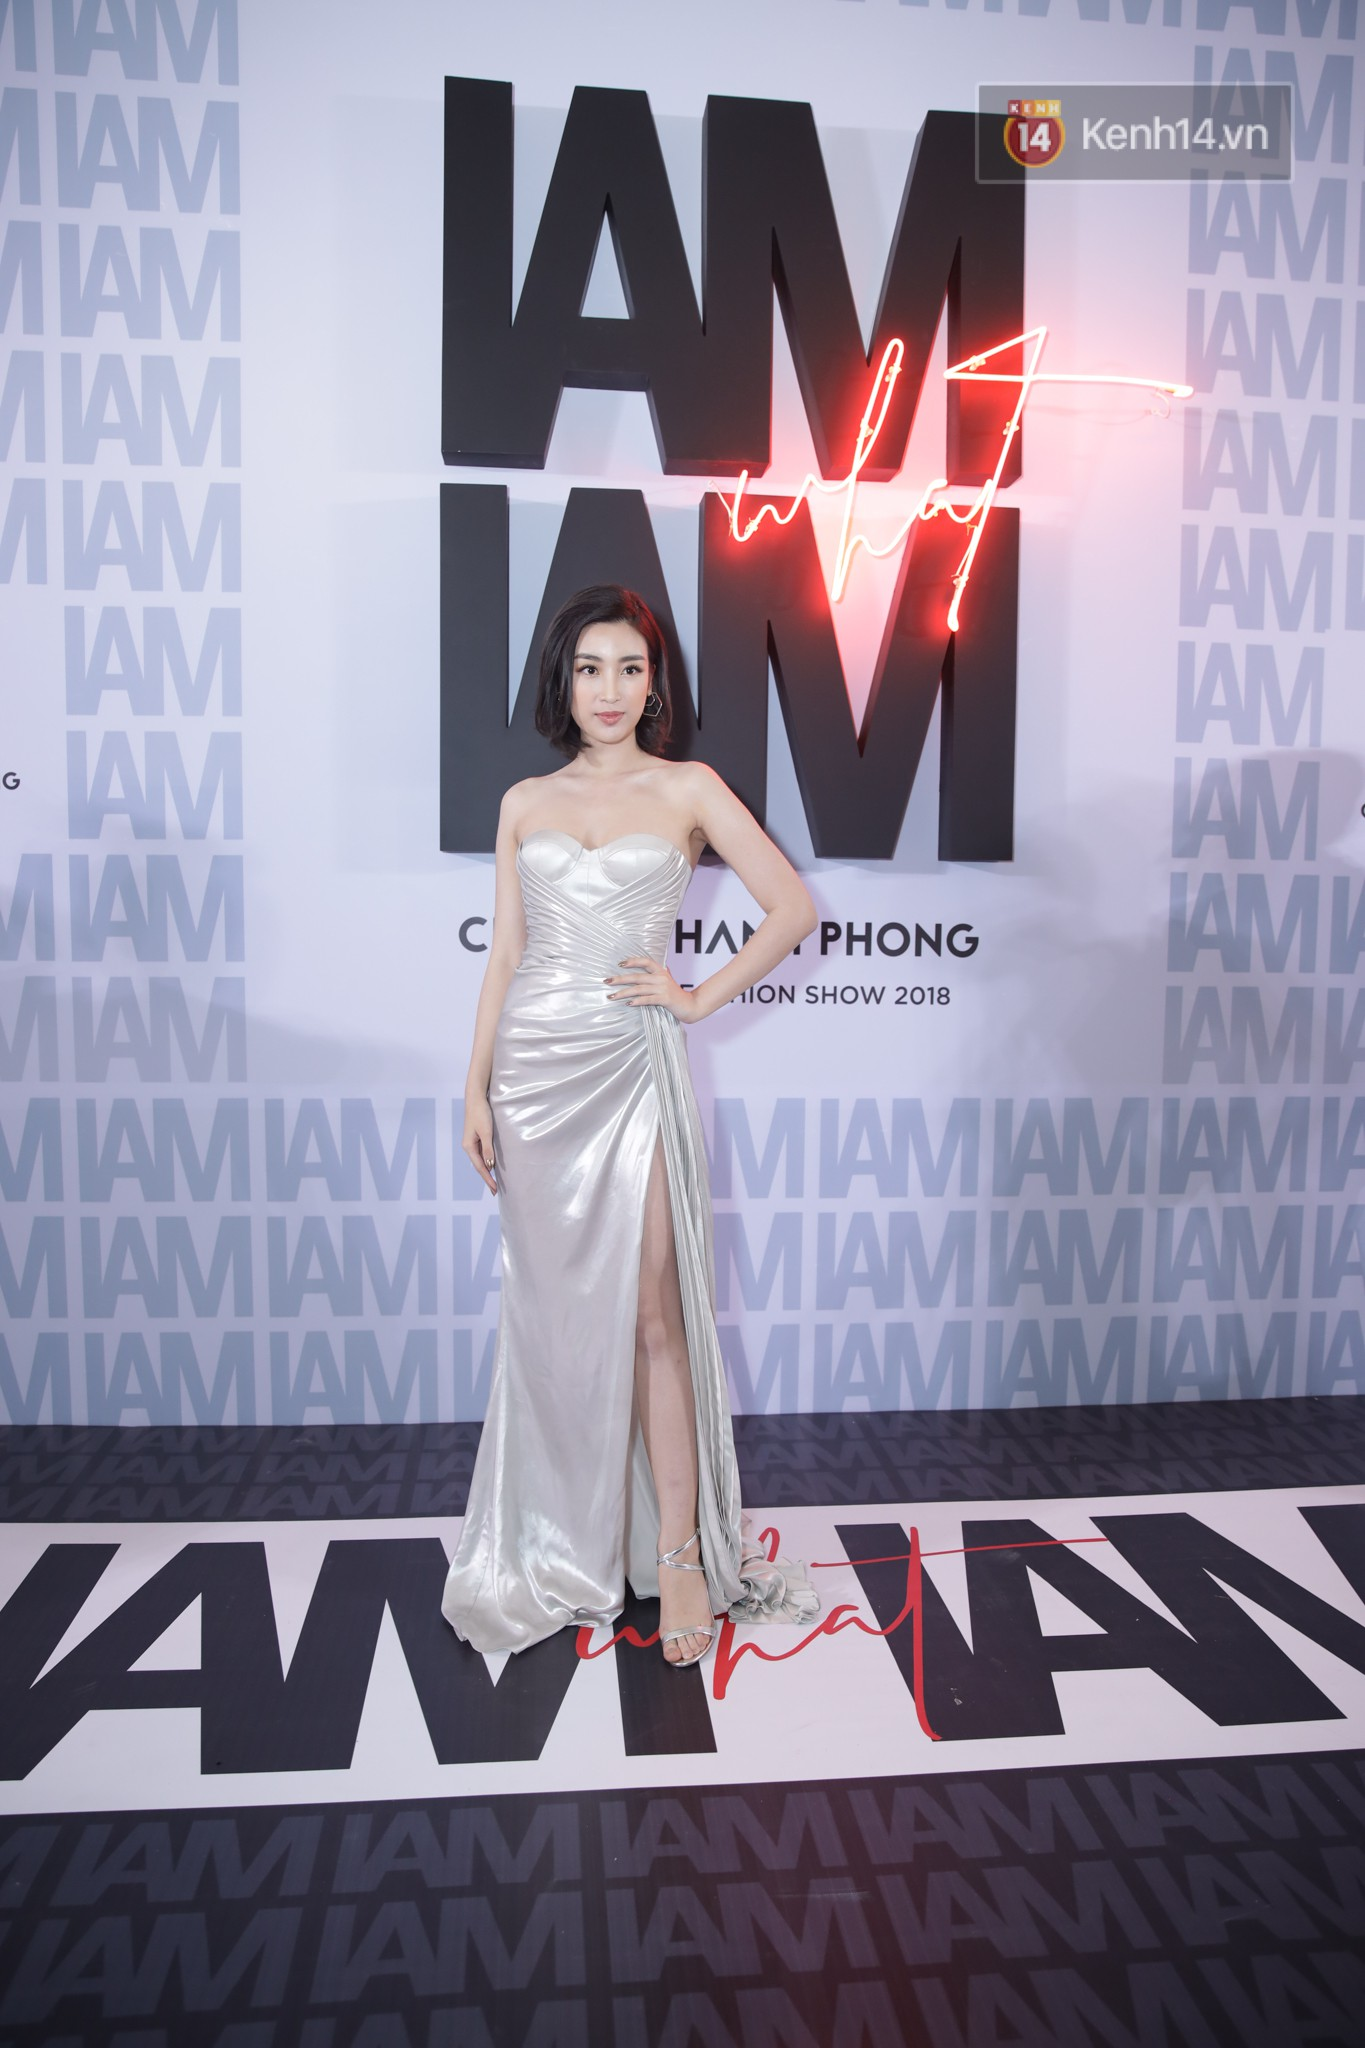 Red carpet Chung Thanh Phong show: It was able to try out strange jewelry, Quỳnh Anh Shyn caught it like a spider with rain - Photo 15.